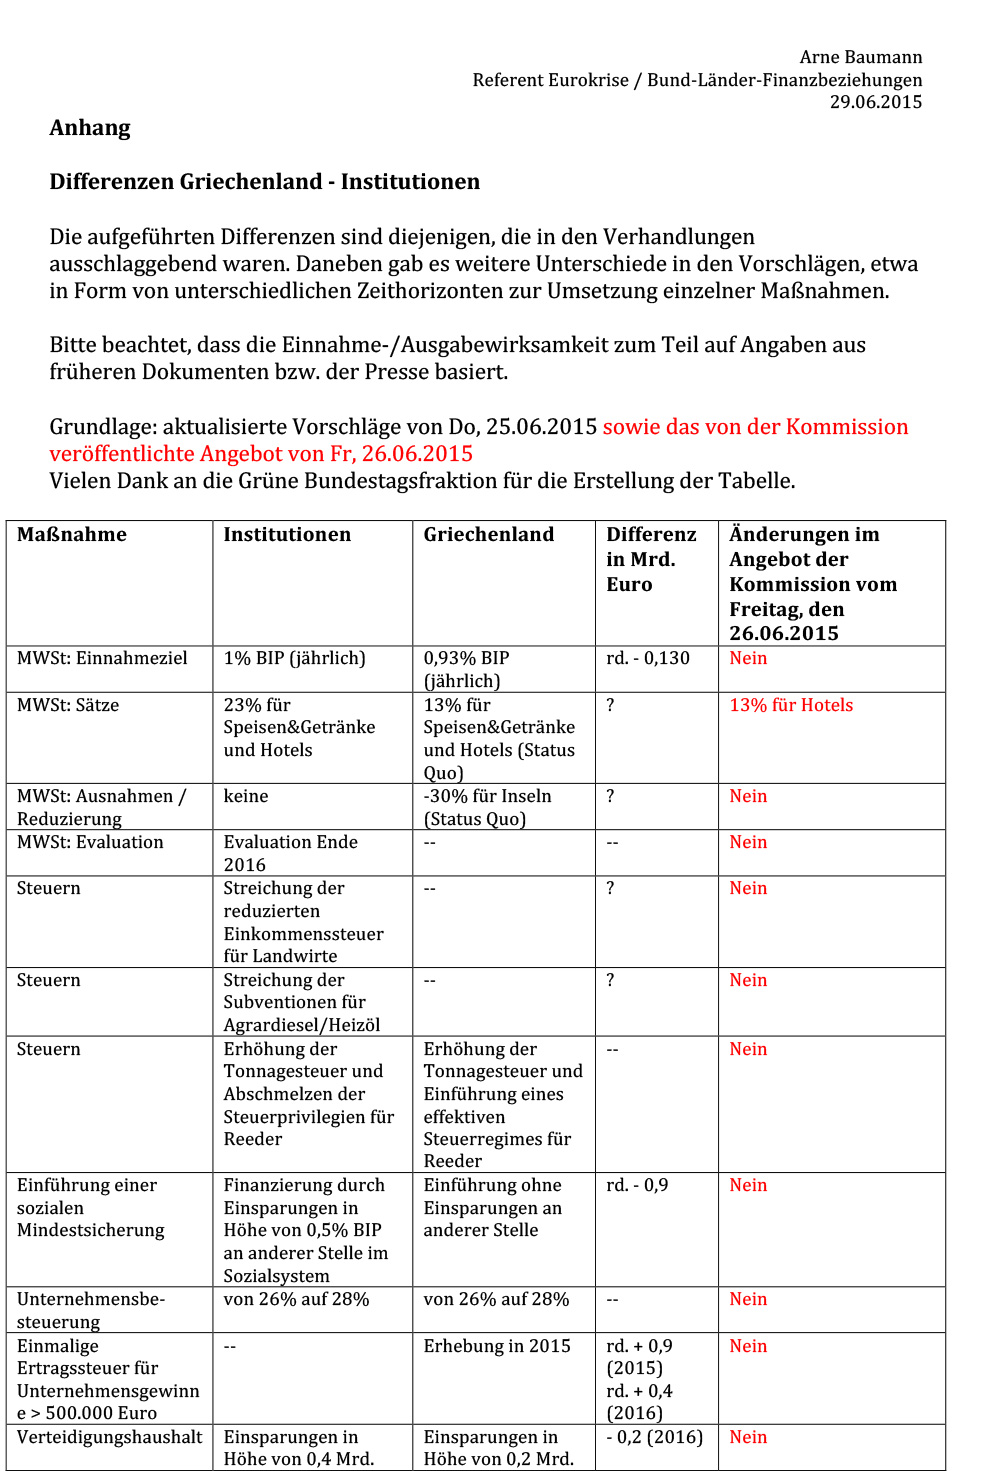 150629-differenzen-institutionen-griechenland-inkl-angebot-vom-26062015-1